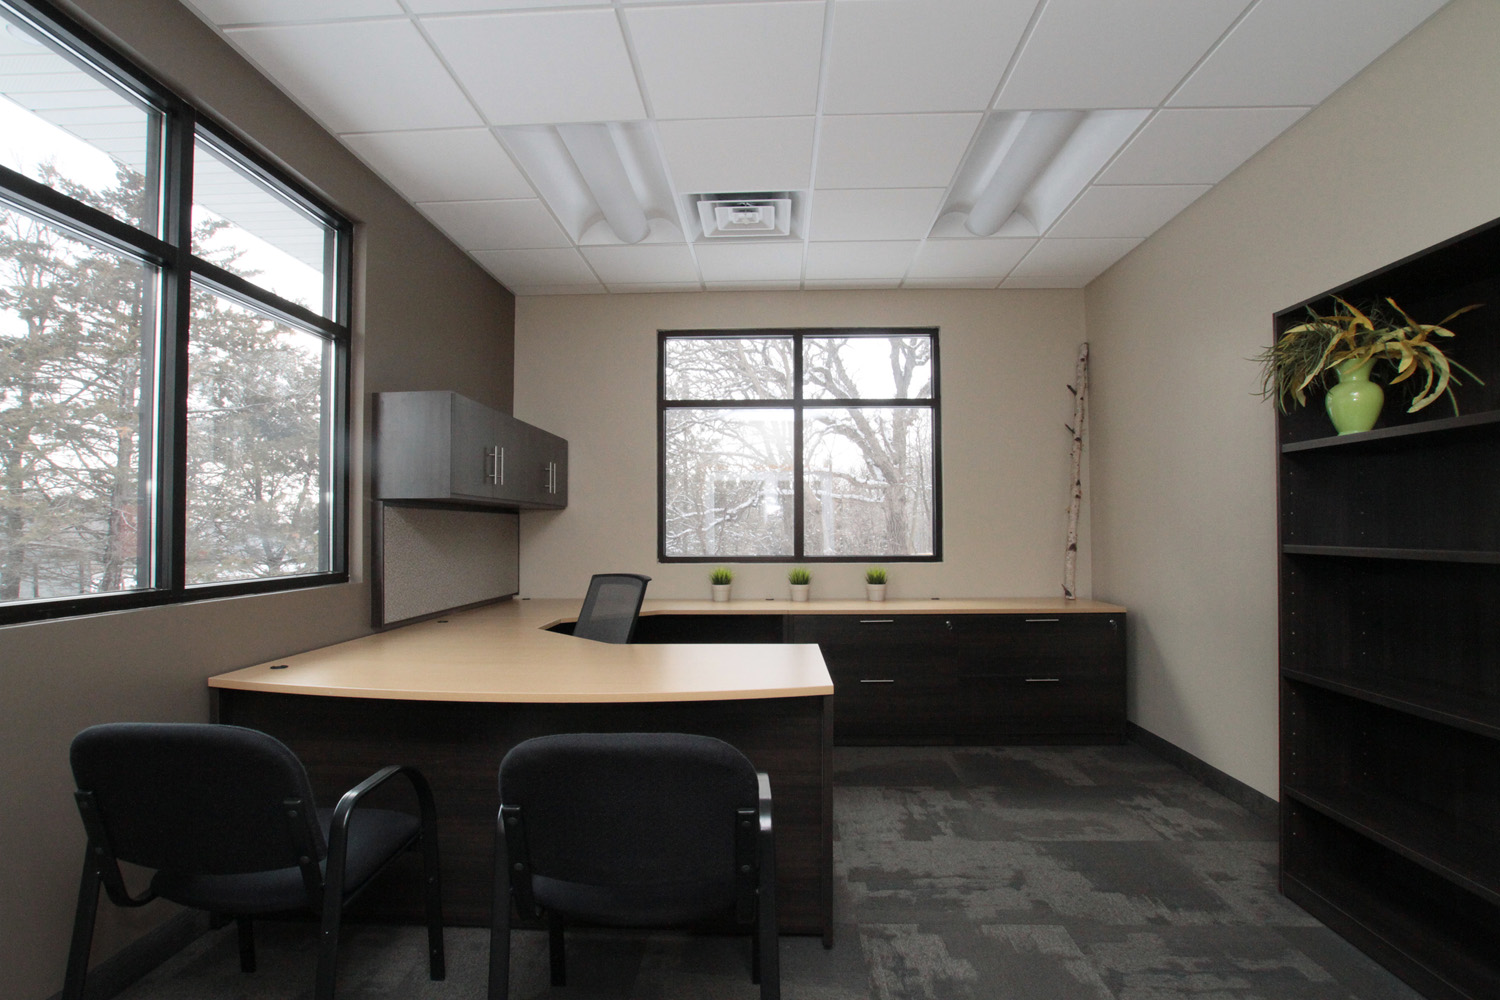 Outstanding Office Space Design Mankato New Used Office Furnishings Mankato Largest Home Design Picture Inspirations Pitcheantrous